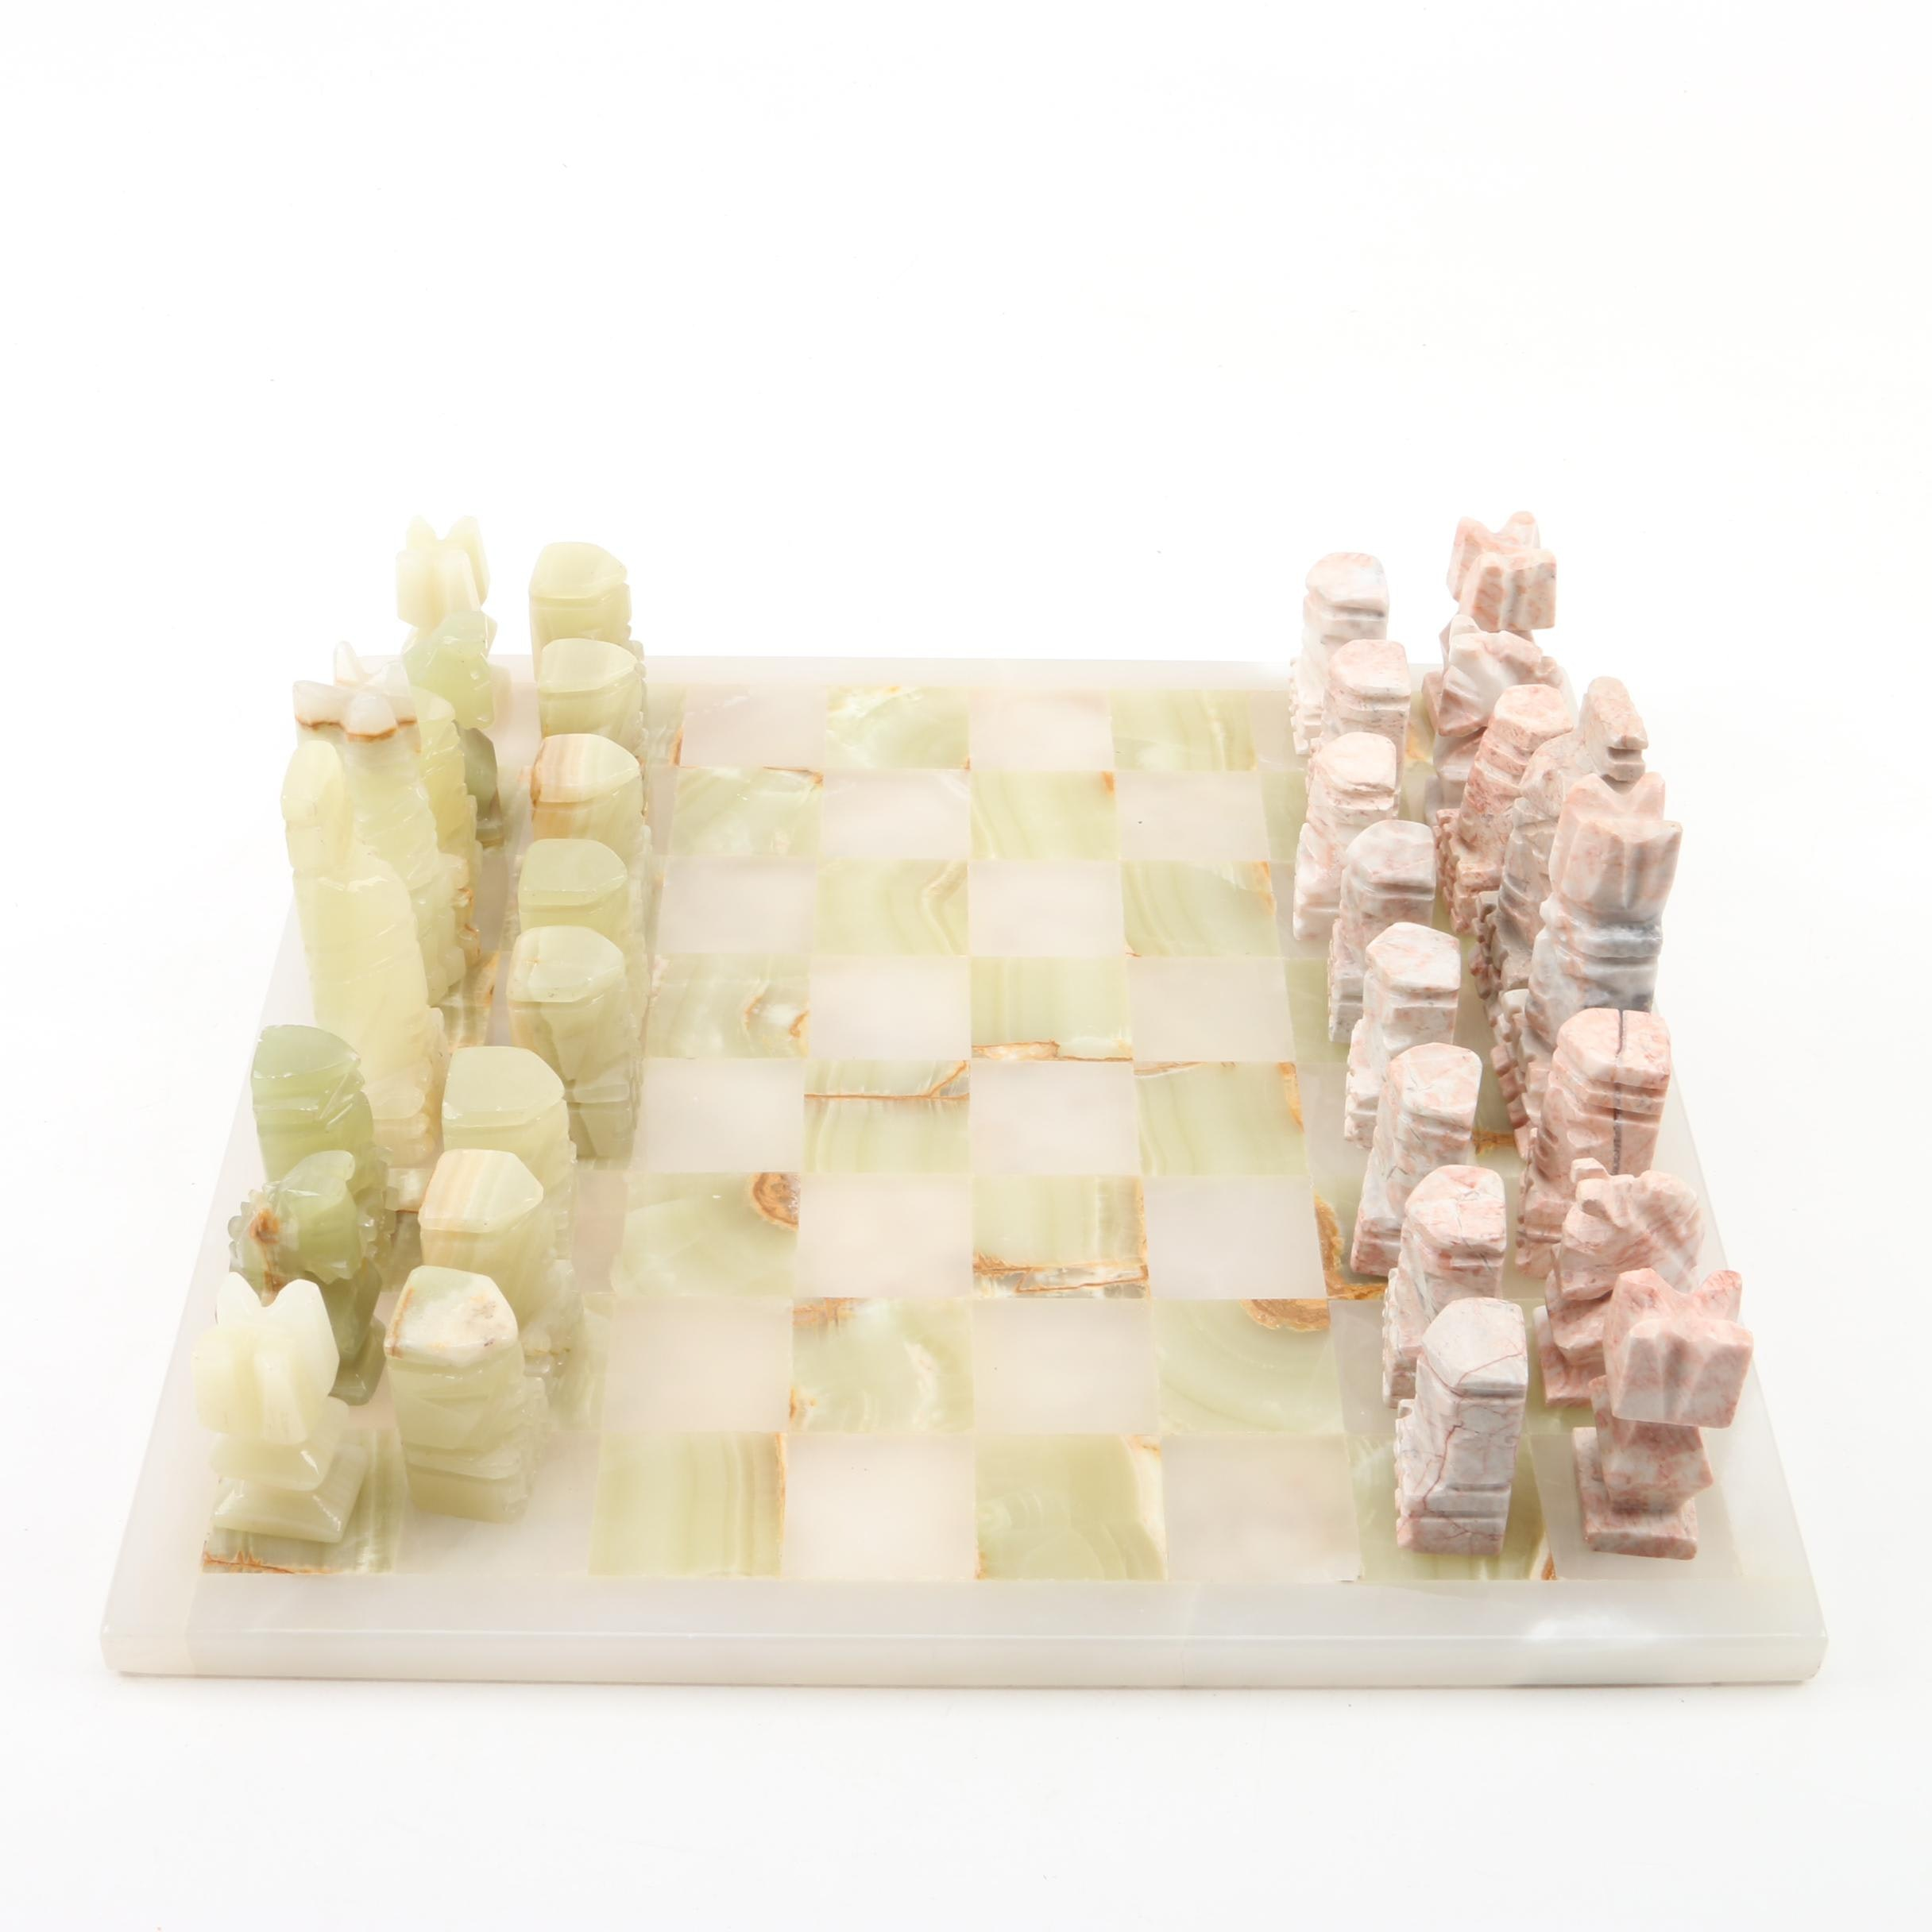 Calcite and Marble Chess Set